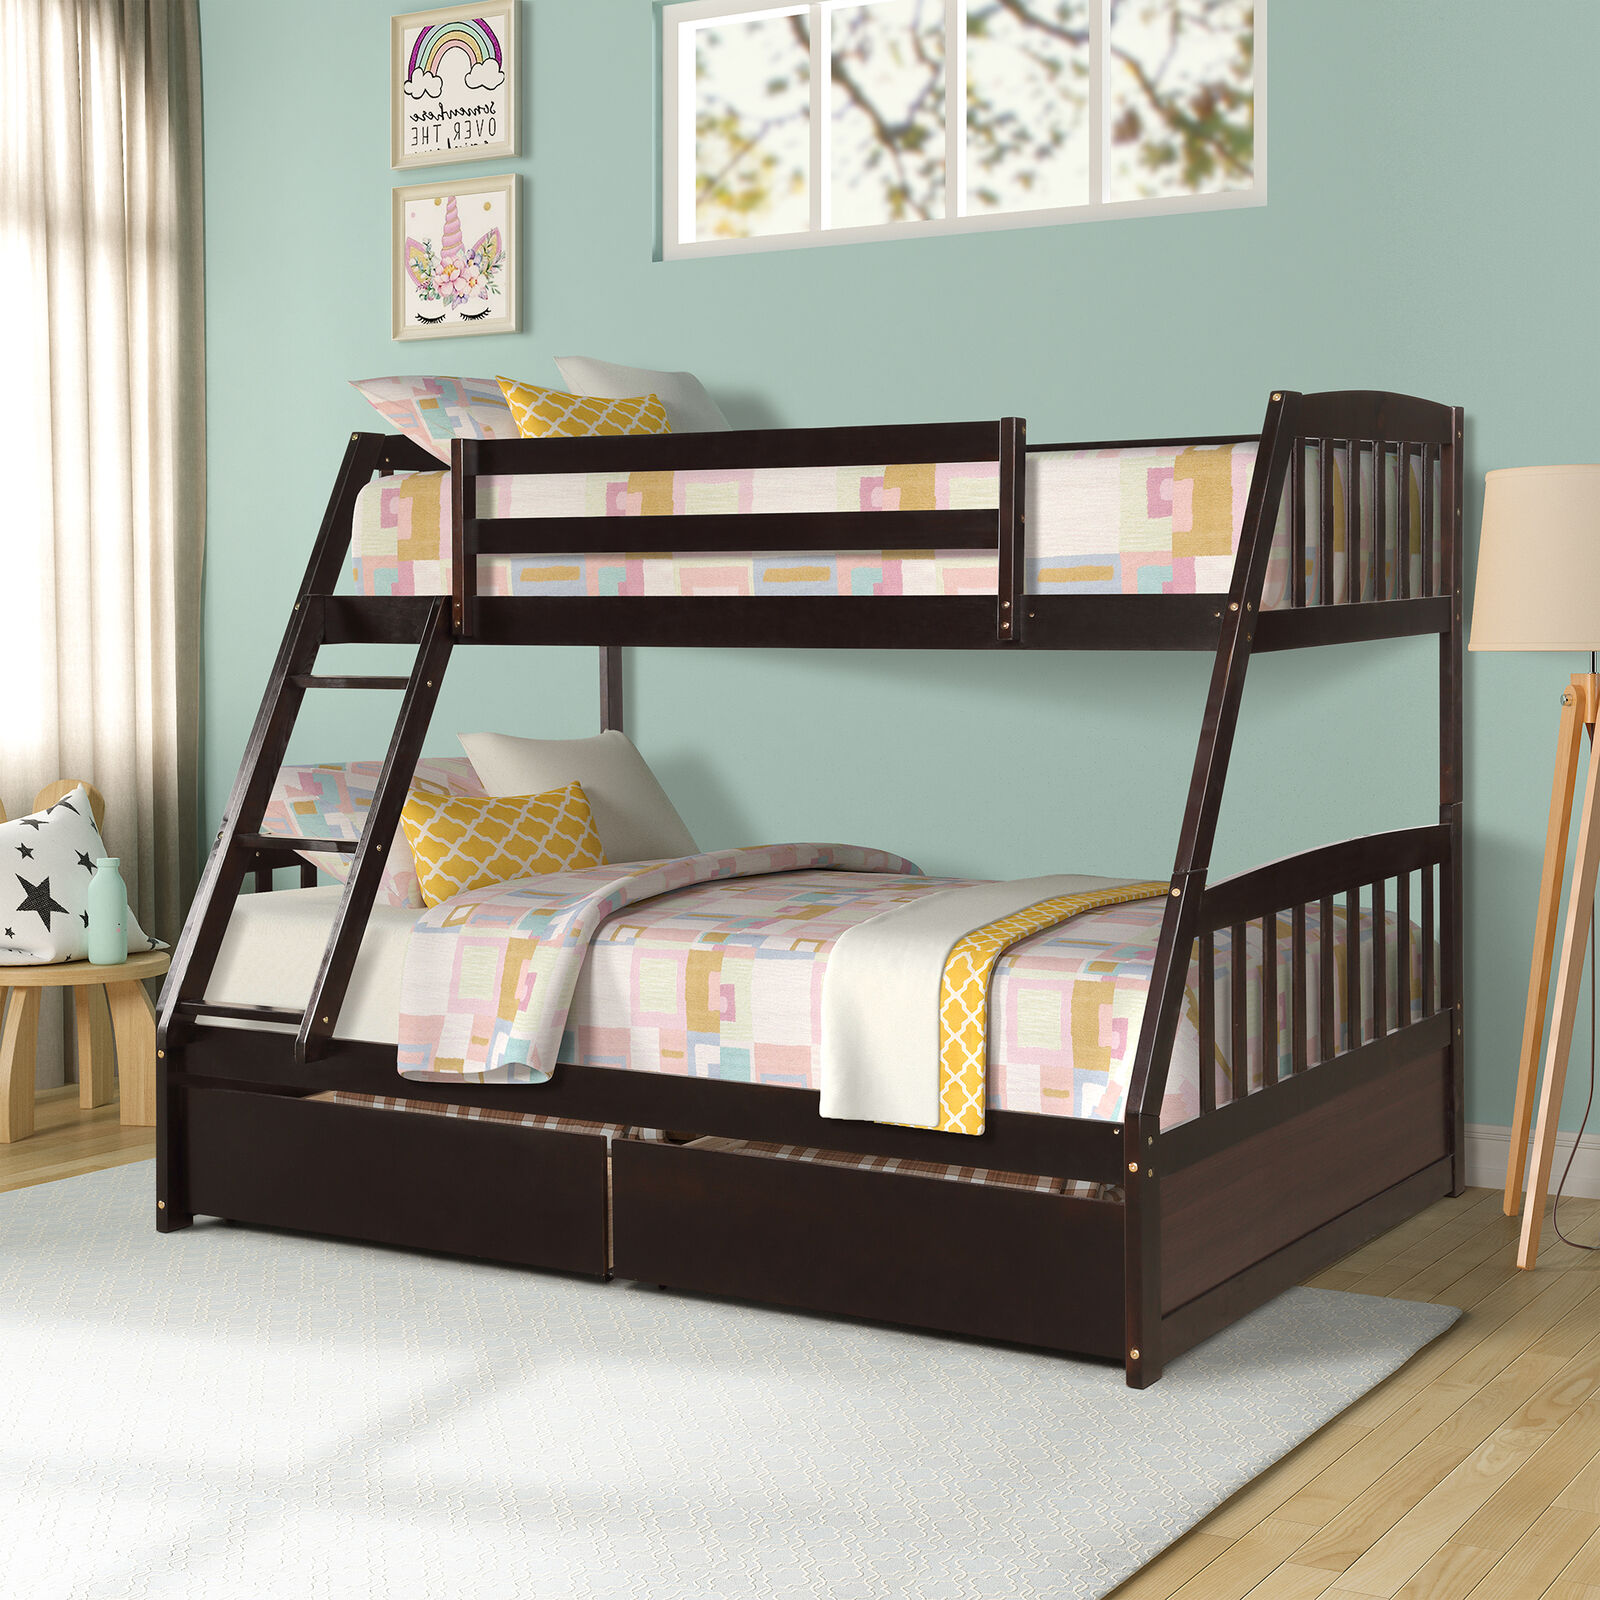 Pemberly Row Twin Over Twin Solid Wood Bunk Bed In Cherry For Sale Online Ebay